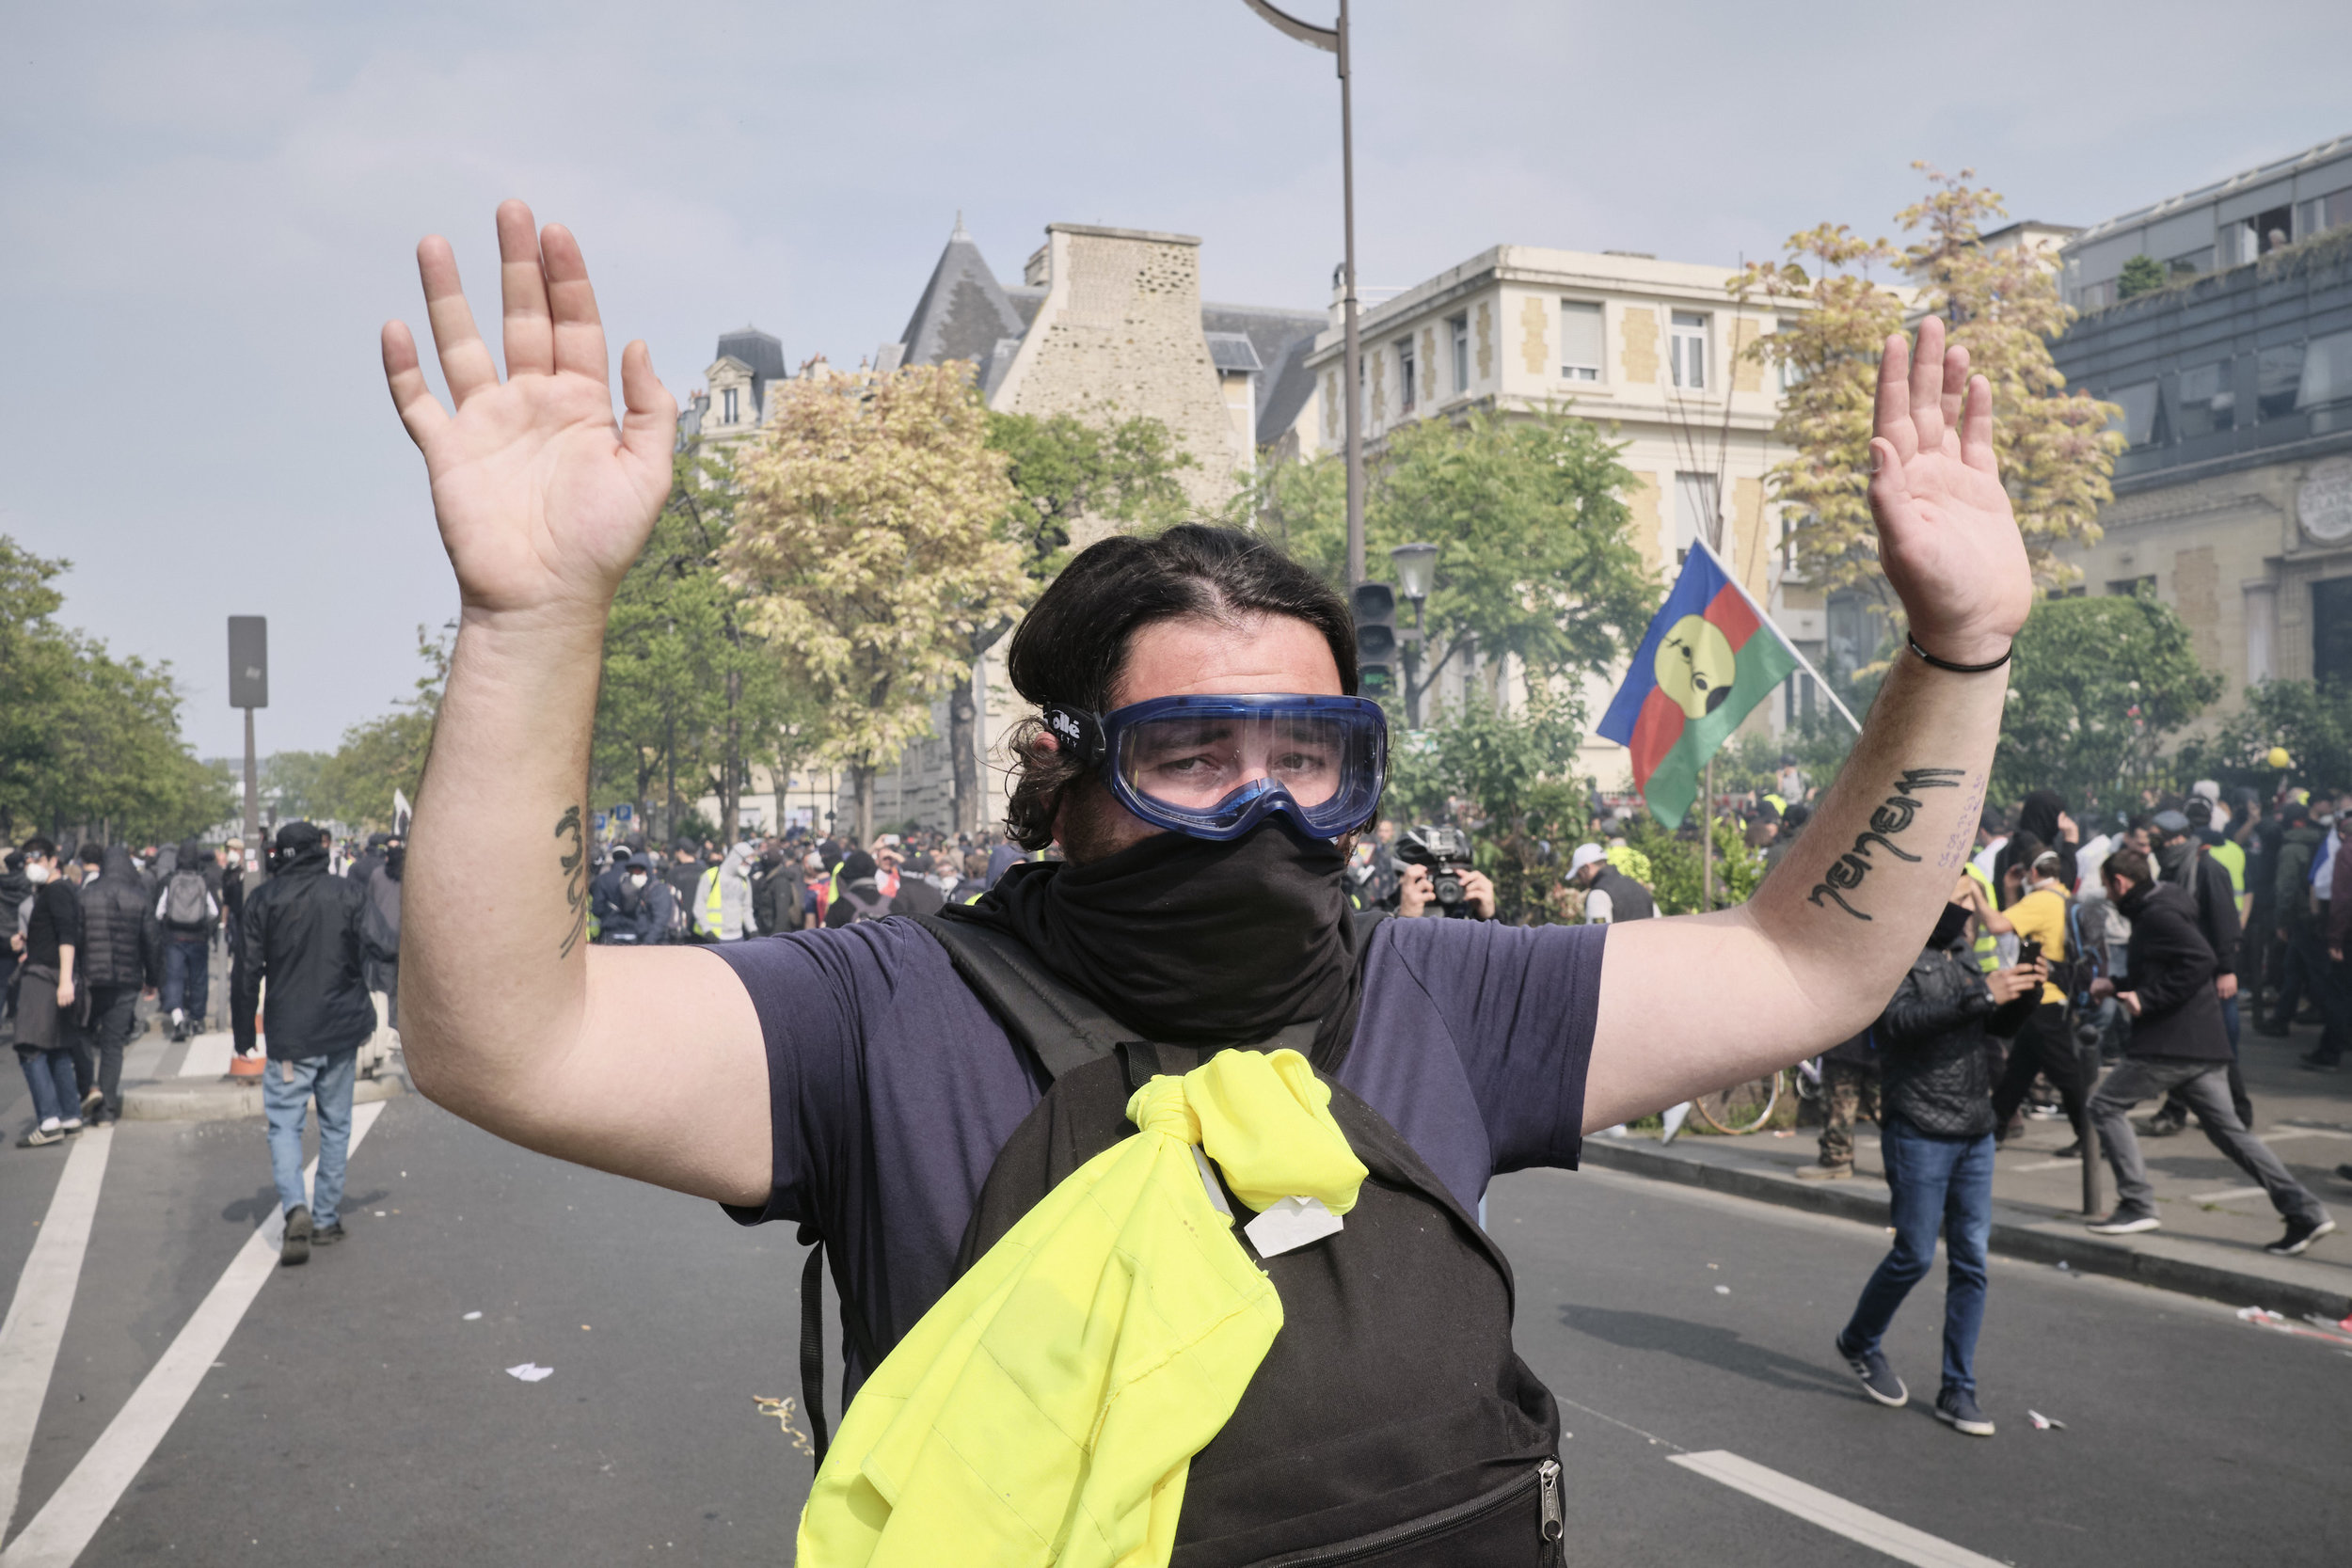 Protester is holding his hands up as a sign of surrender and peace after a violent confrontation with the police at The Boulevard Arago.